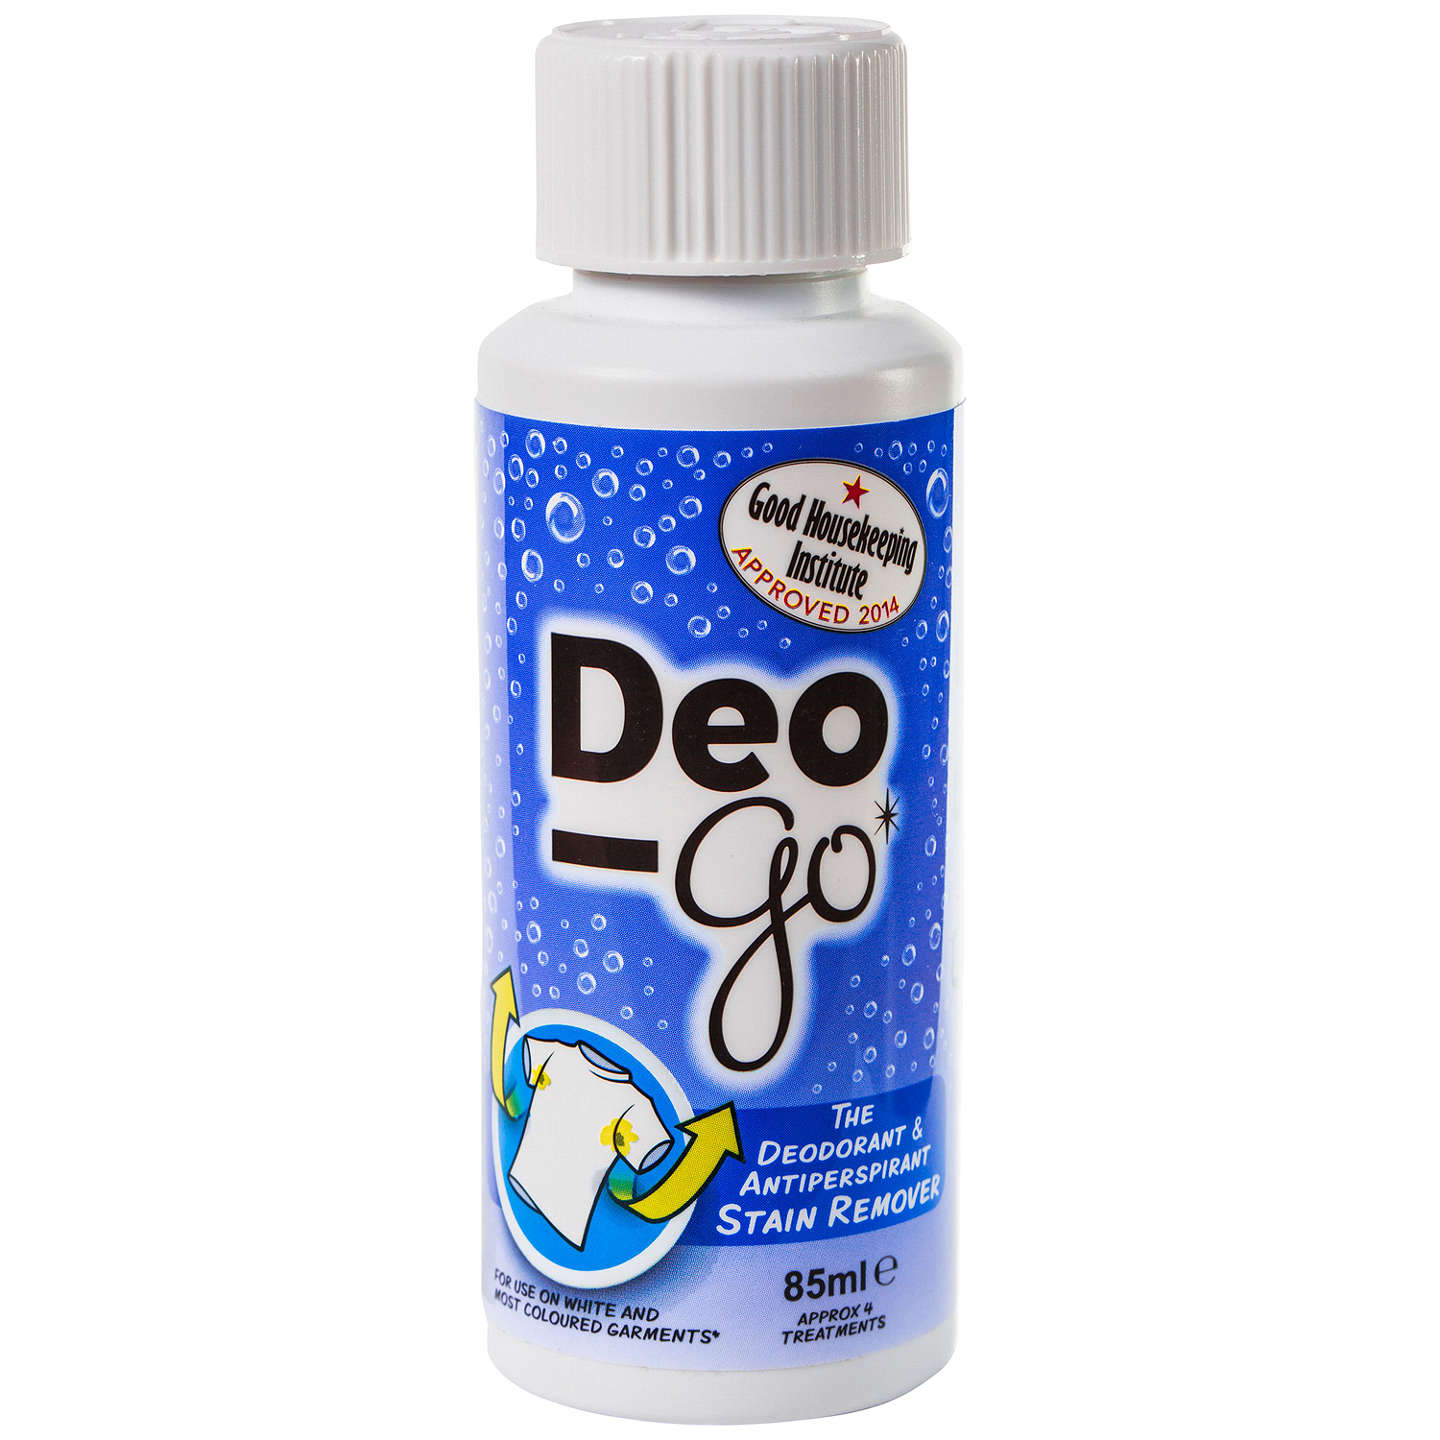 BuyDeo-Go Deodorant Stain Remover, 85ml Online at johnlewis.com